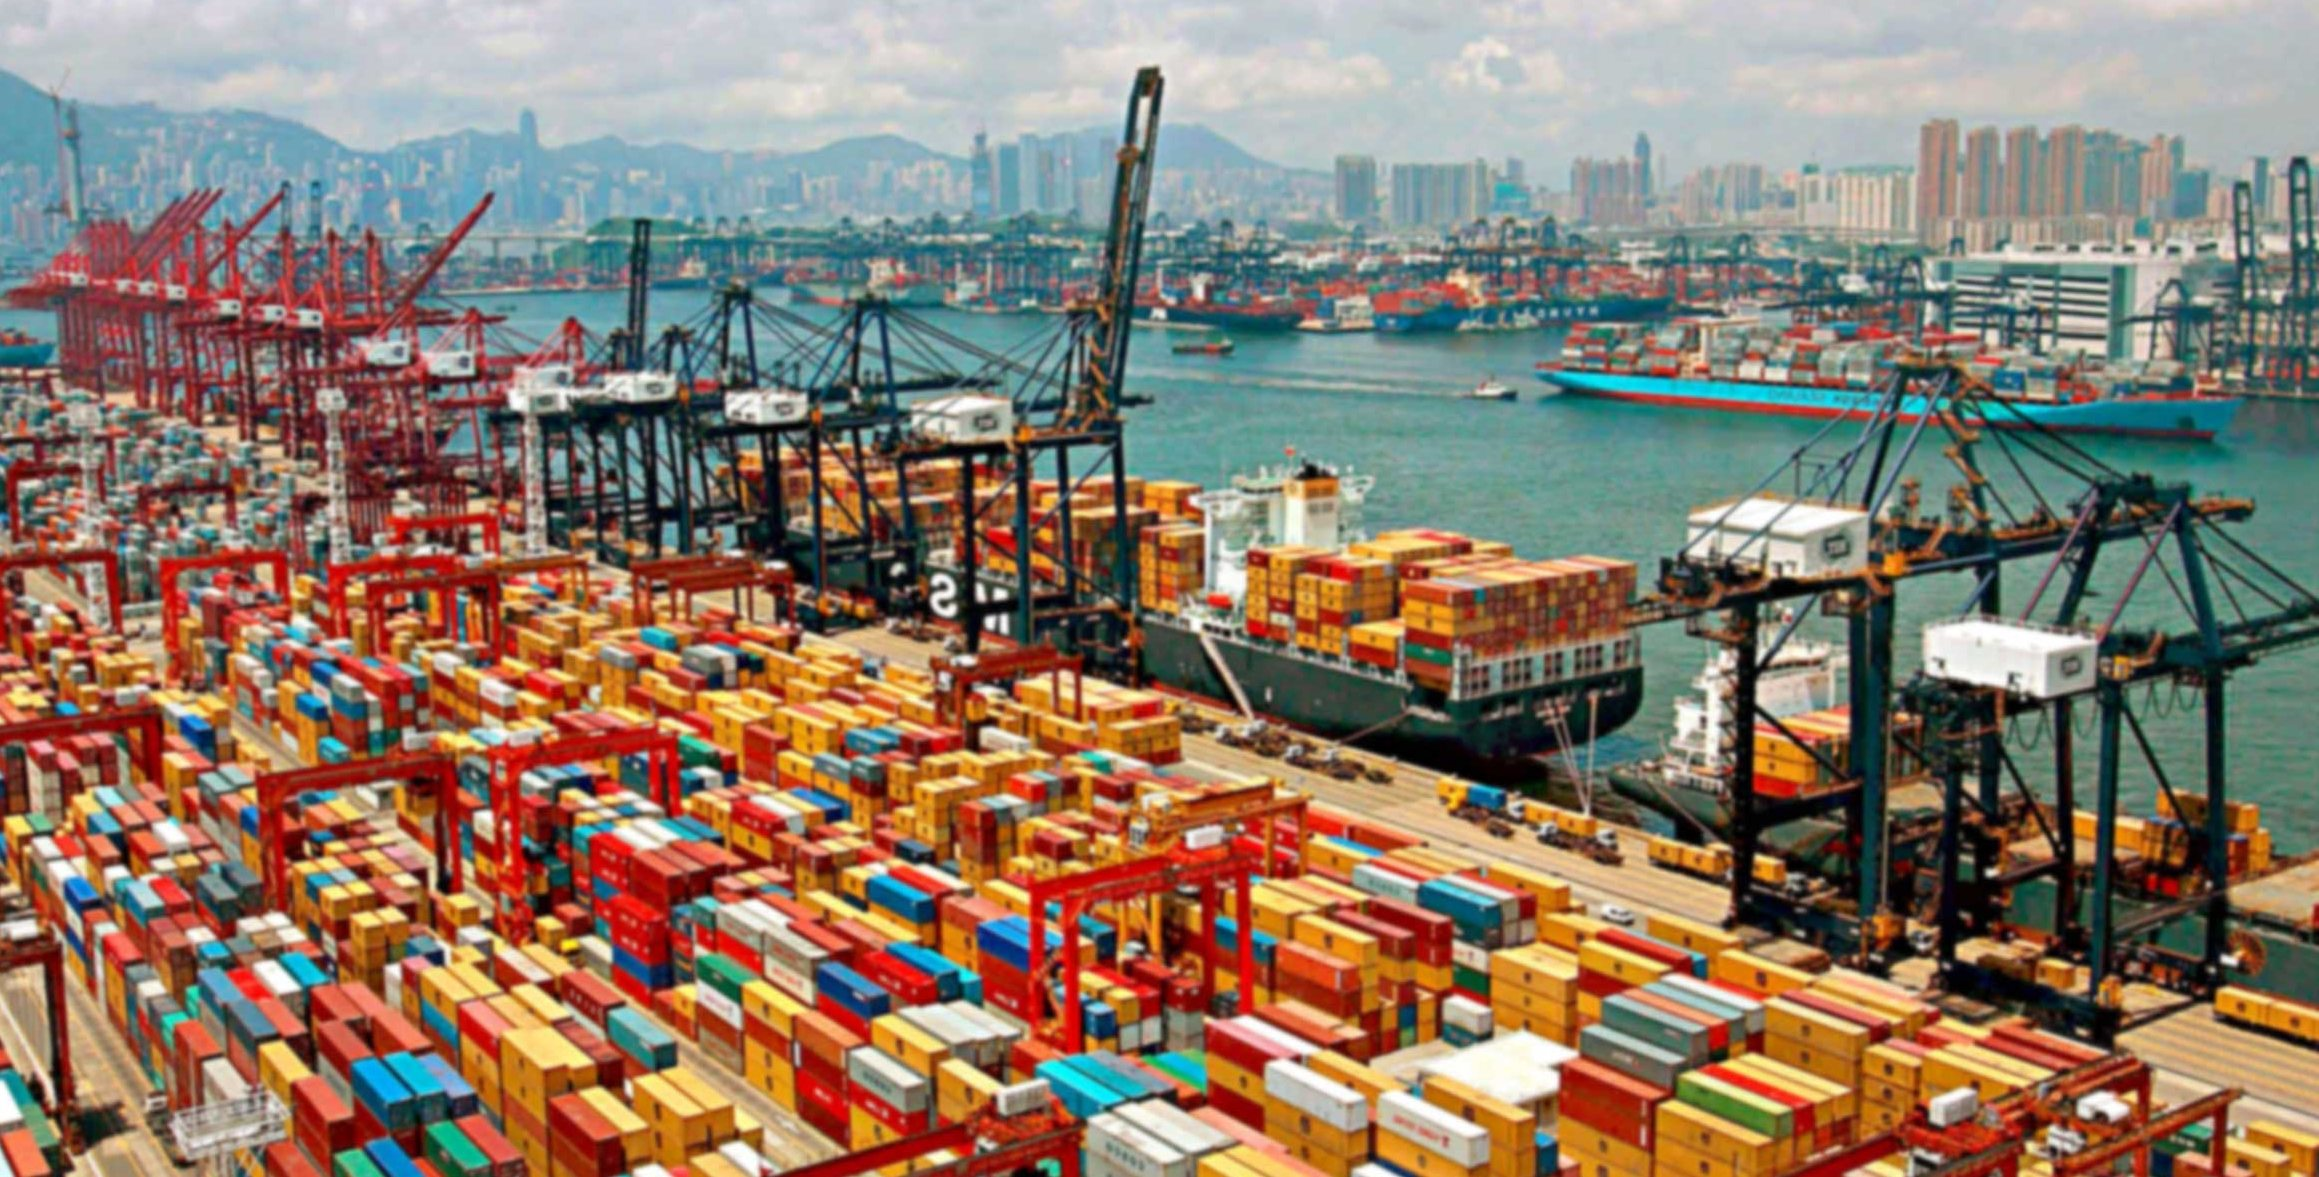 Port of Shanghai ancient China Facts